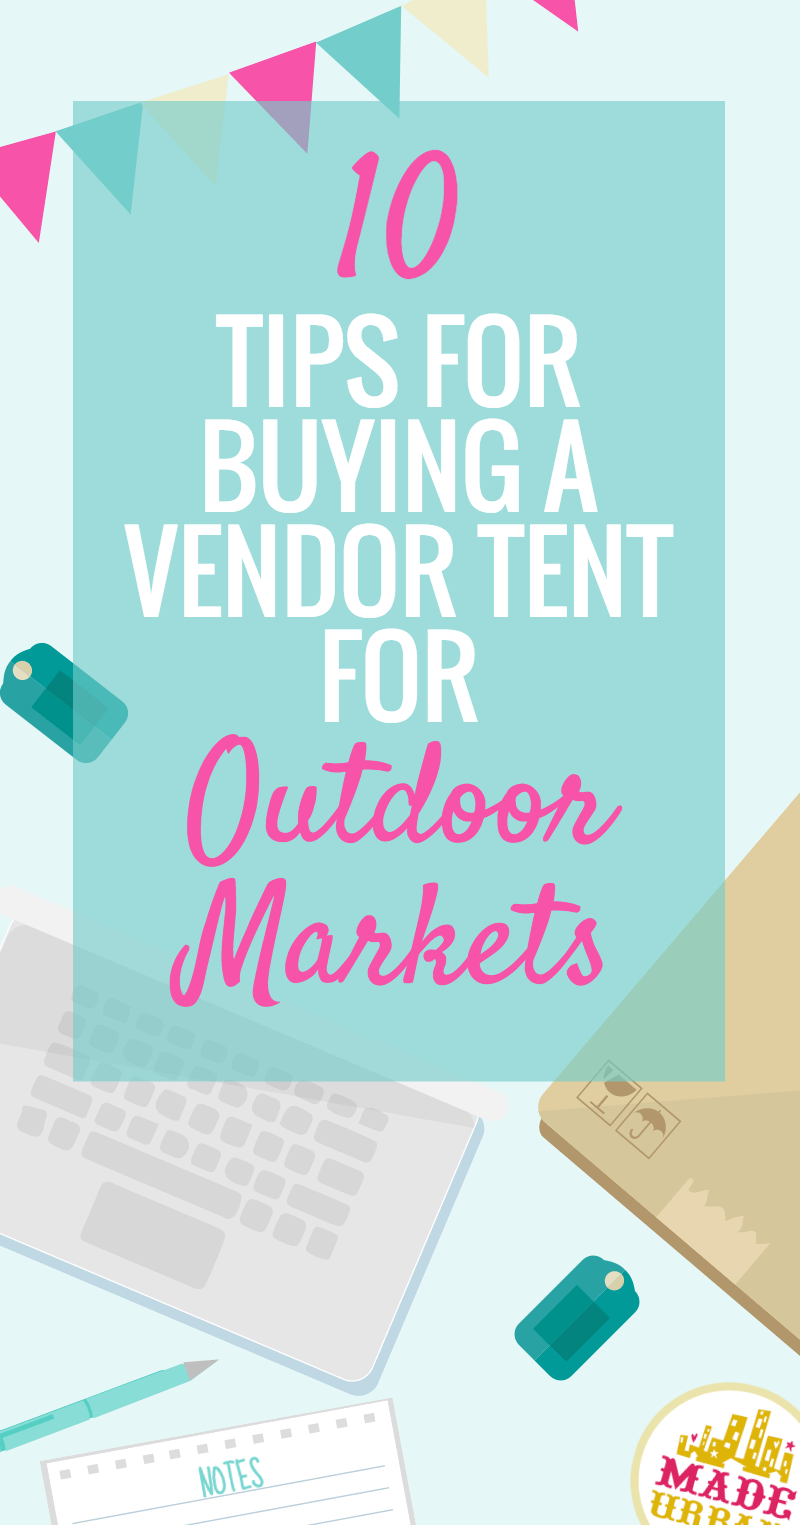 10 Tips for Buying a Vendor Tent for Outdoor Markets